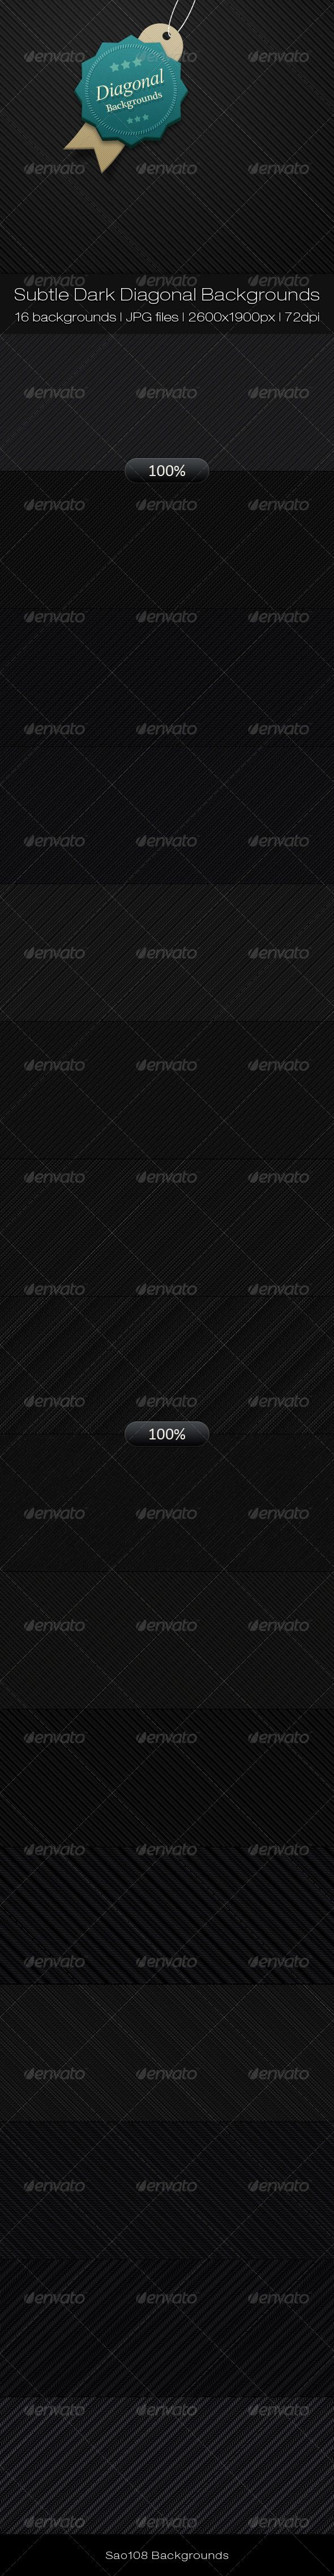 Diagonal backgrounds (fabric style backgrounds)